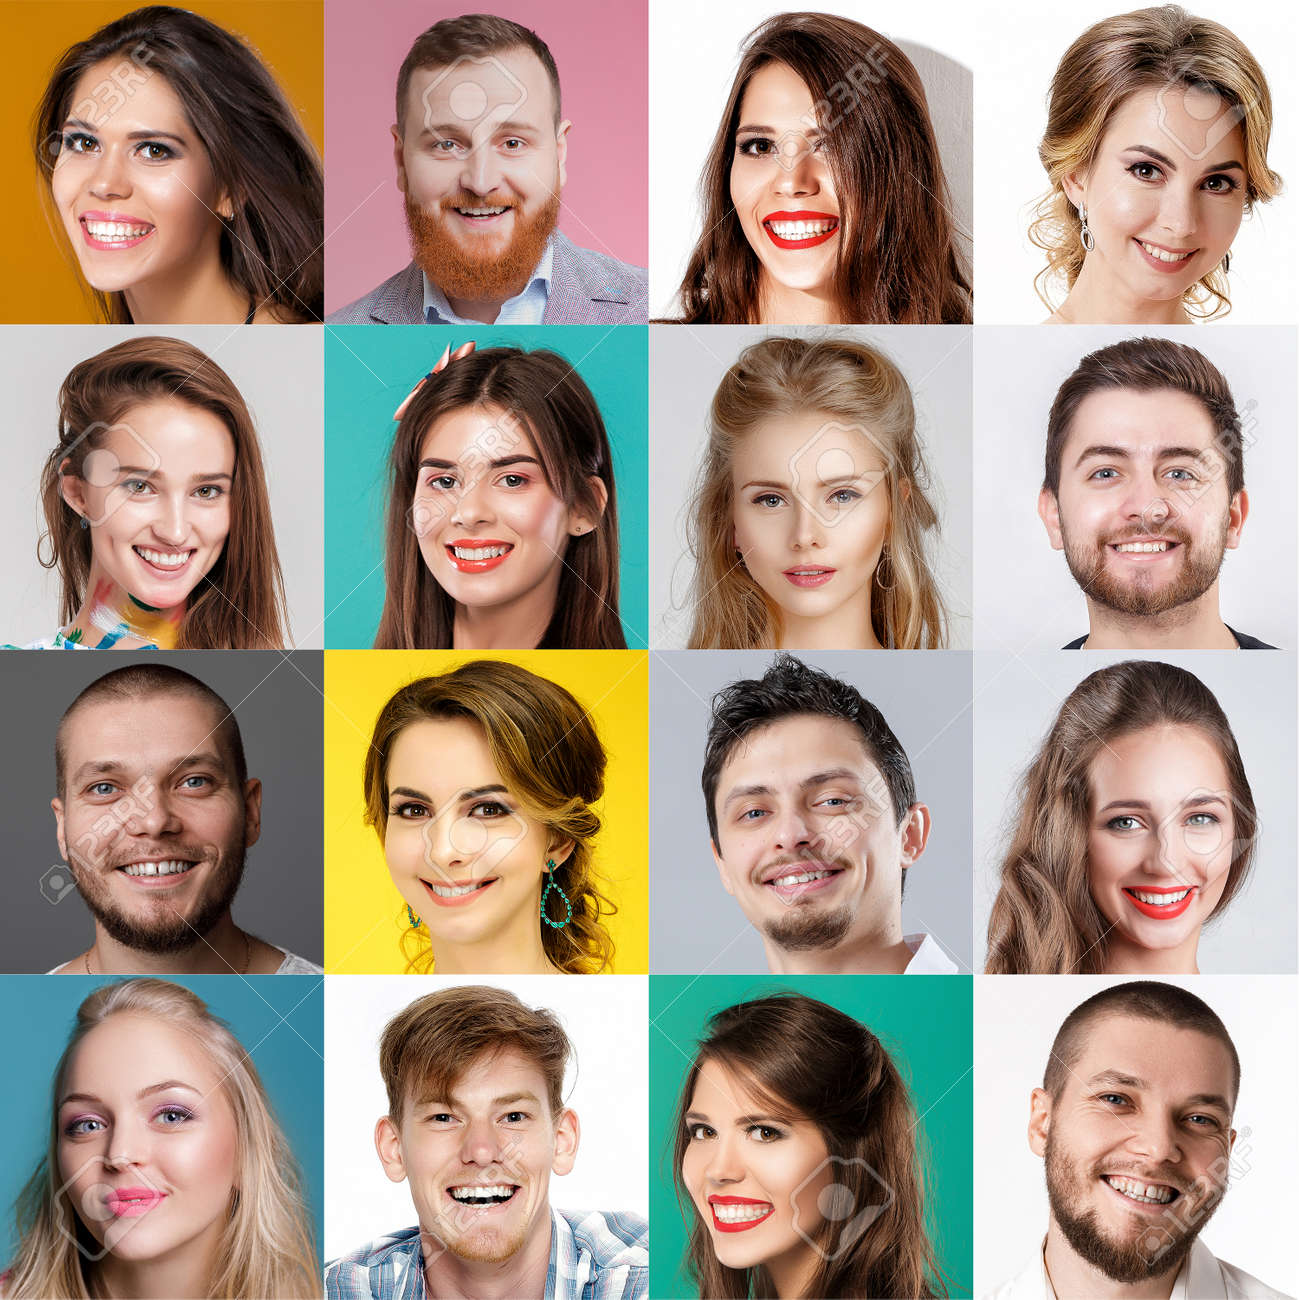 collage of happy faces of people. Happy men and women expressing different positive emotions. - 149502127